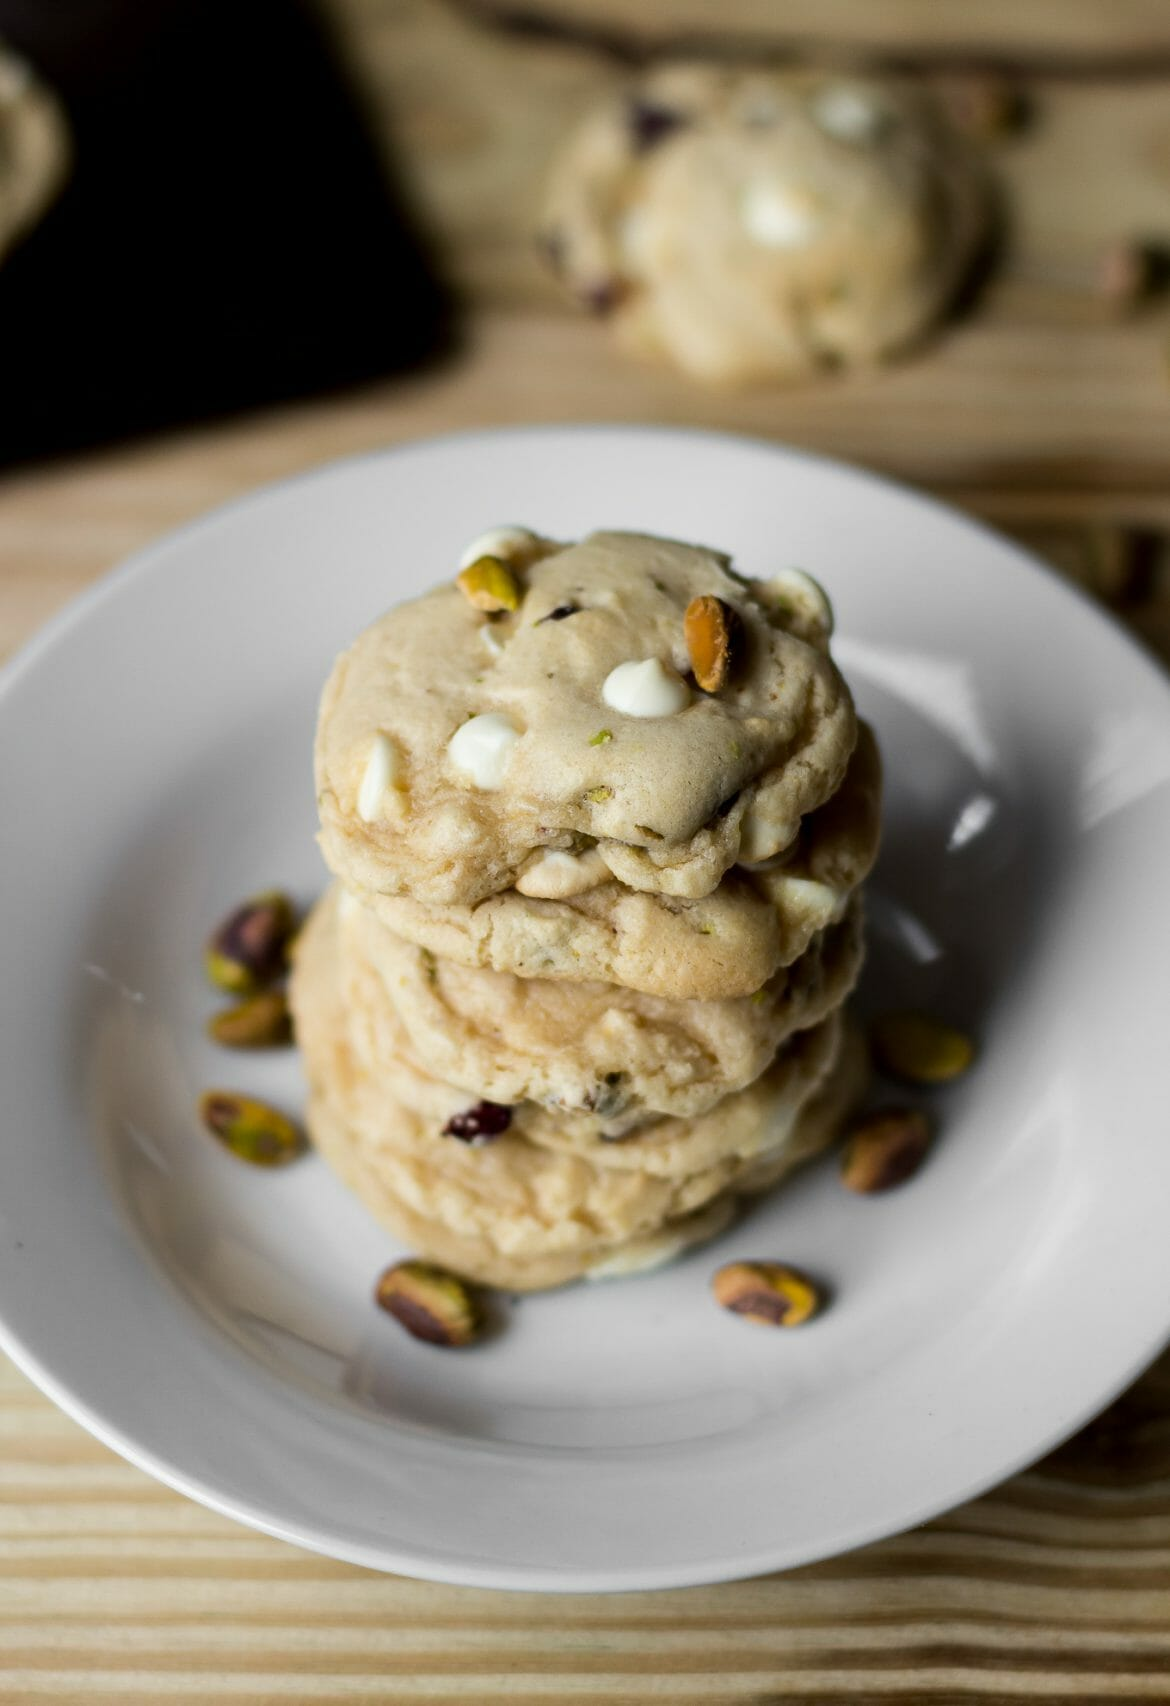 national pistachio day, cranberry white chocolate chip pistachio cookies, pistachio cookies, pistachio recipes